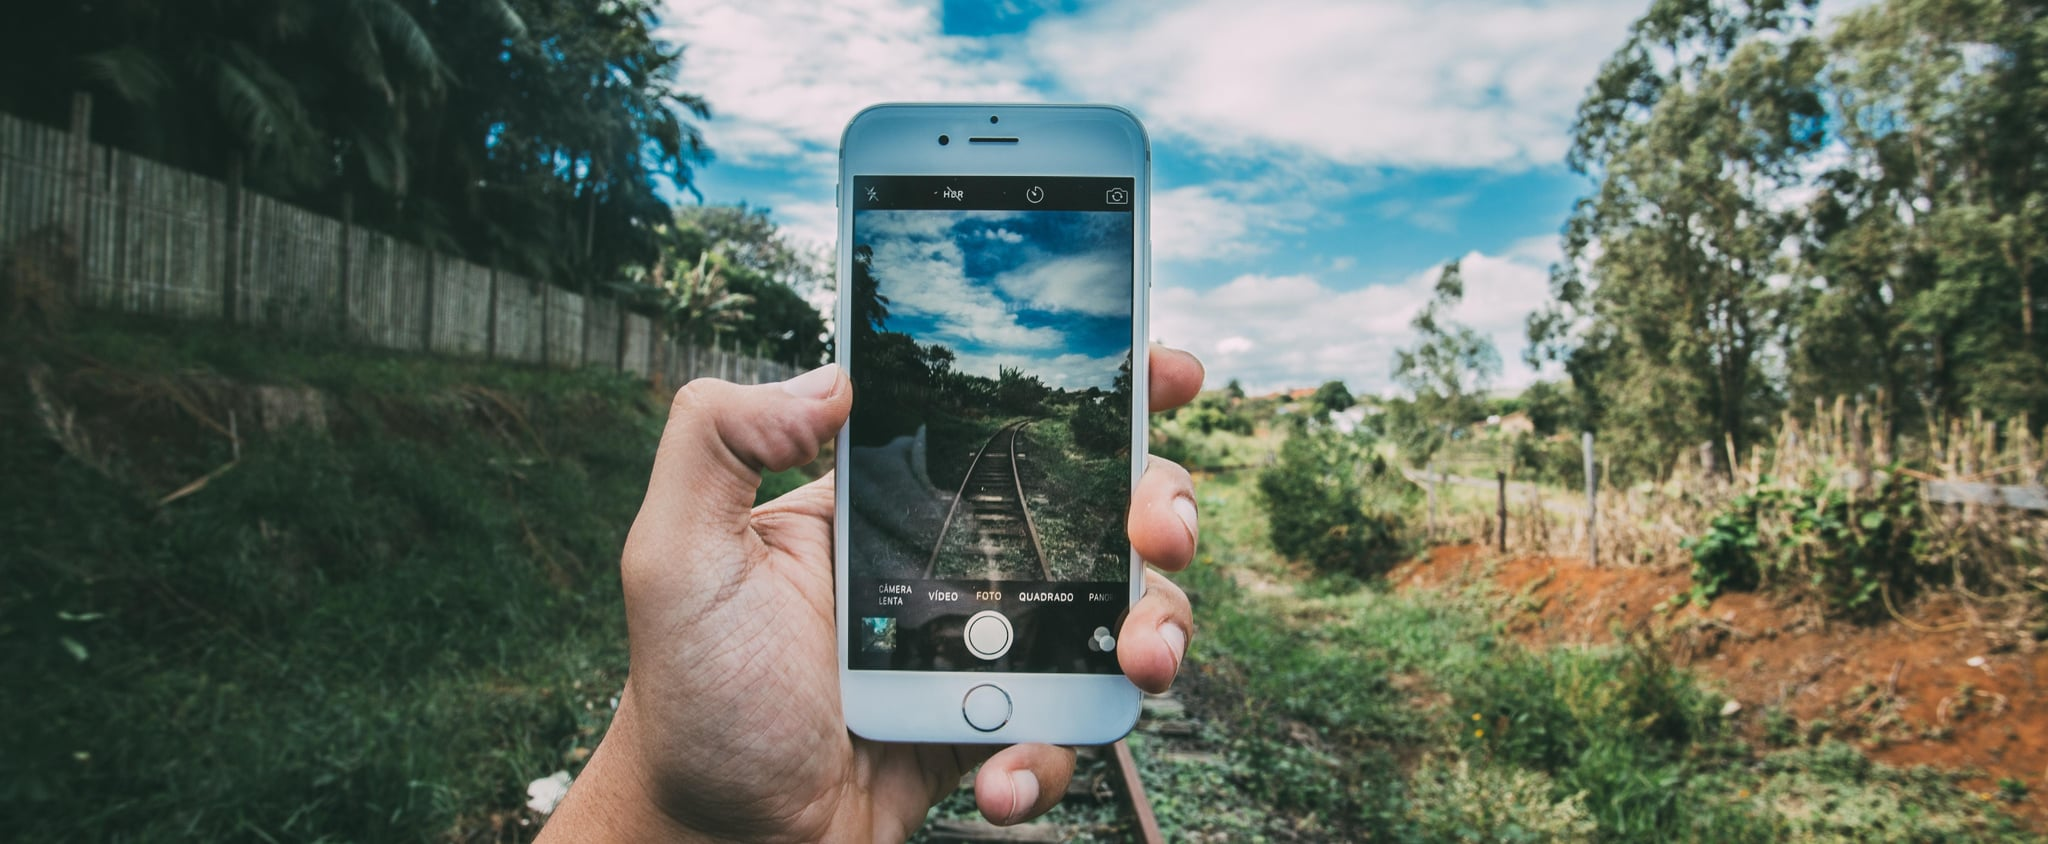 How to Take Photos on an iPhone When Your Storage Is Full